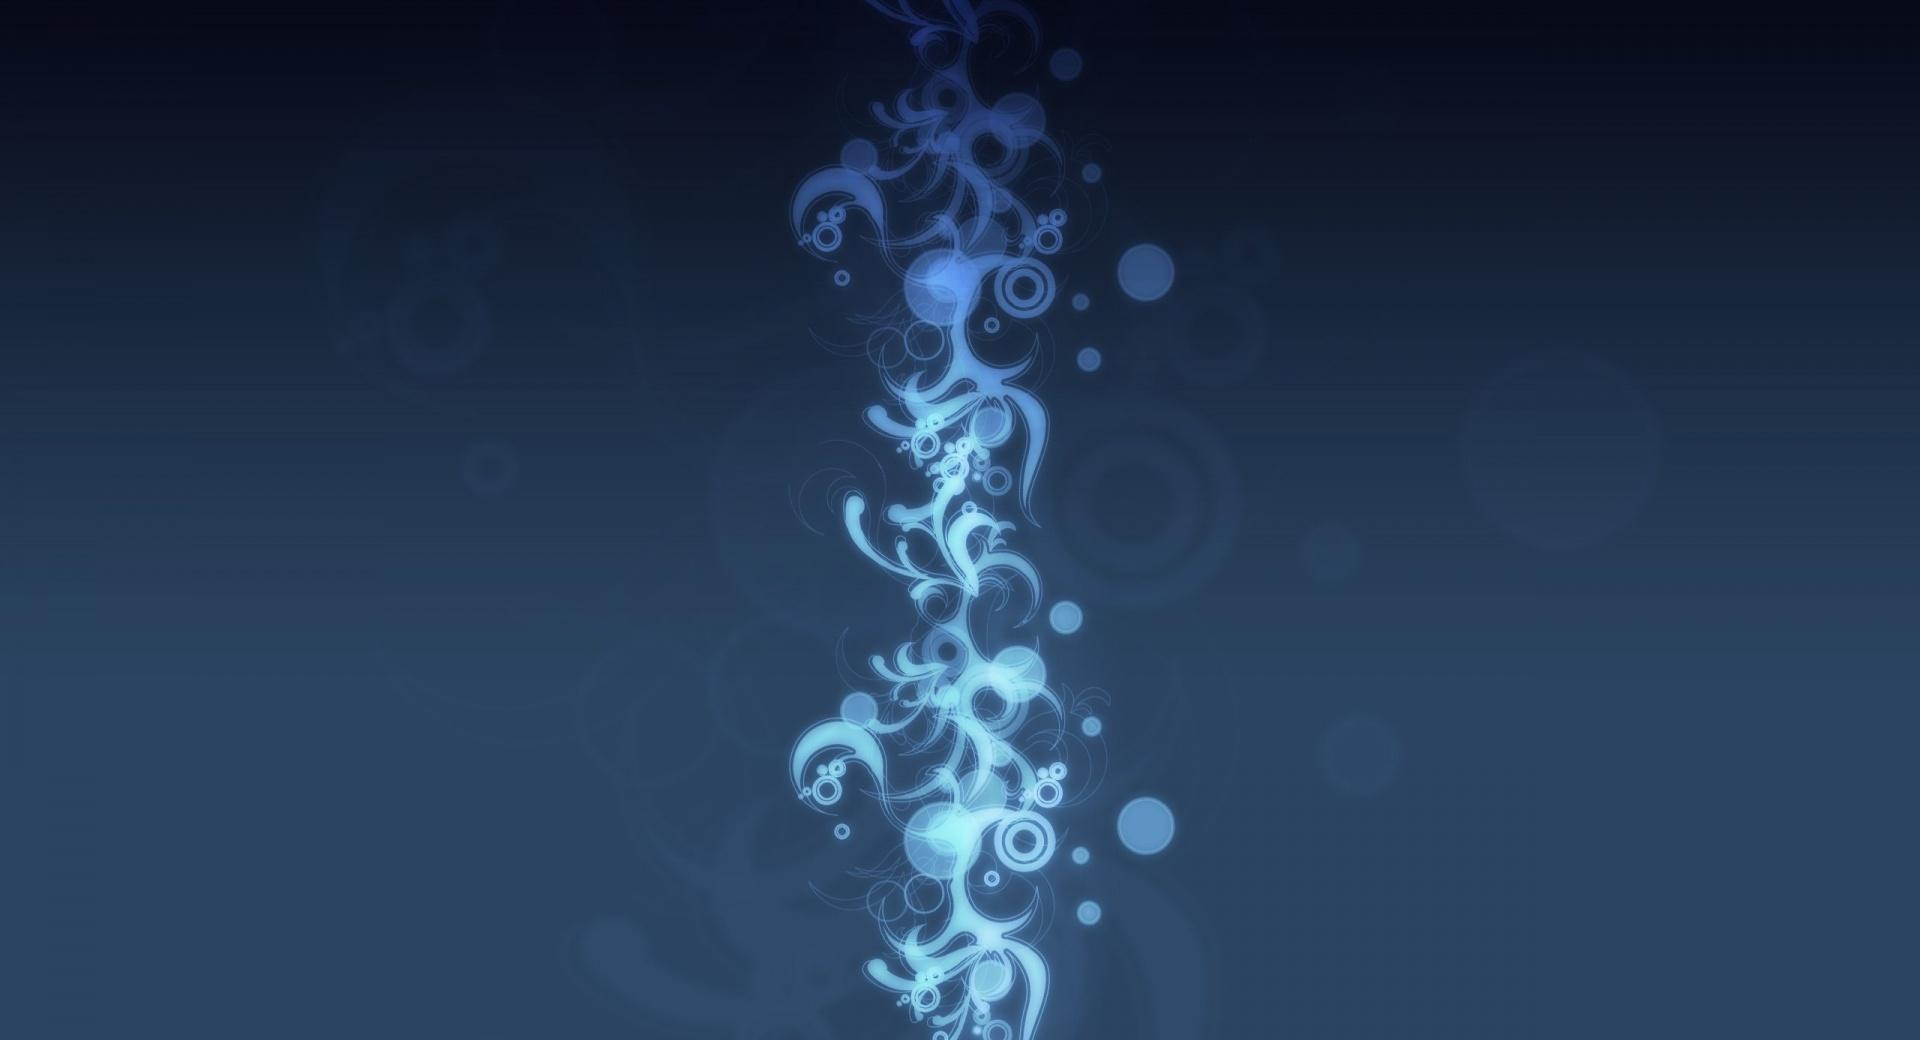 Abstract Design (Blue) at 1152 x 864 size wallpapers HD quality